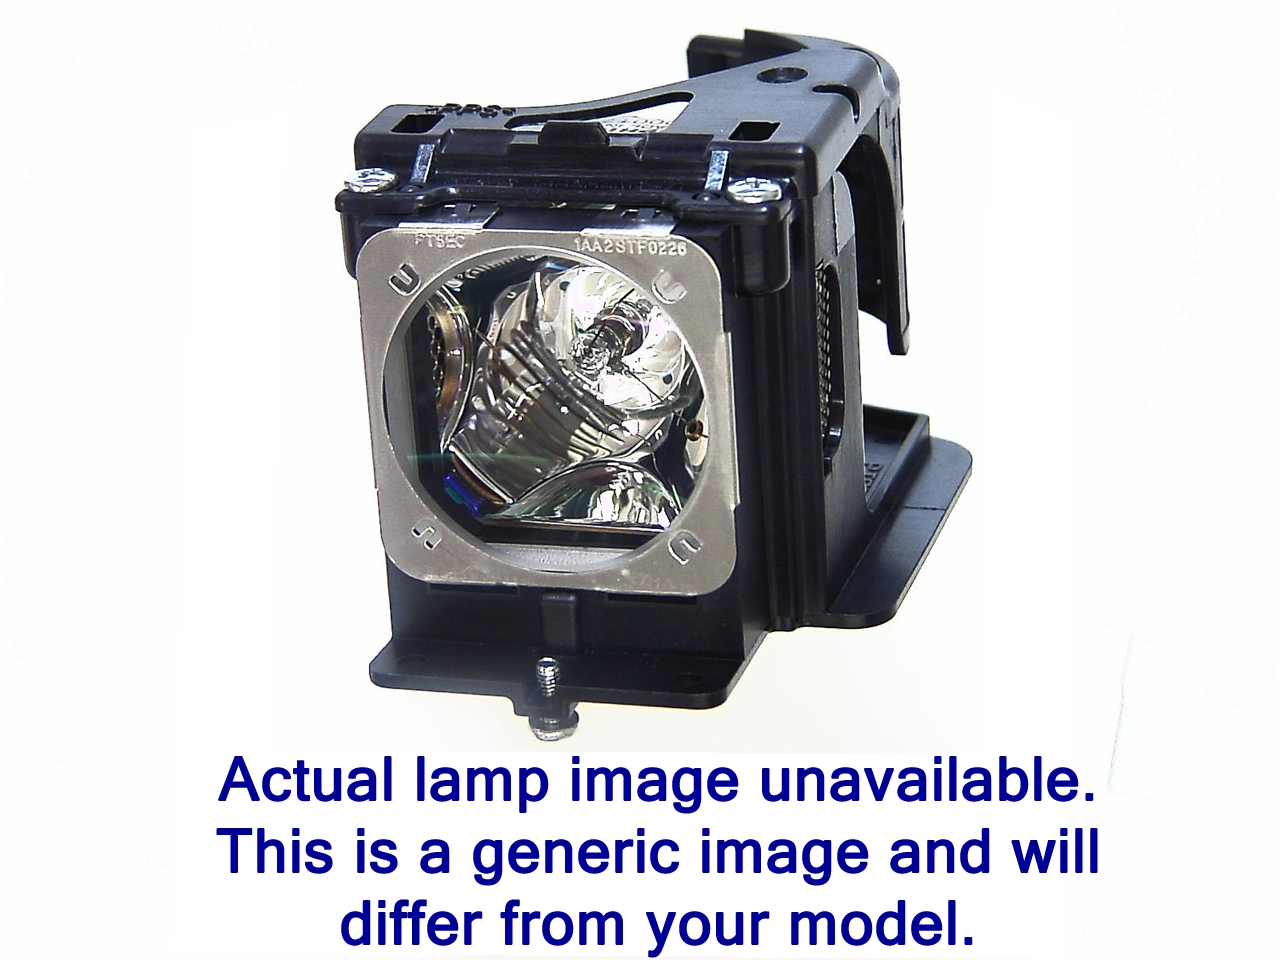 Smart Lamp for Serial Numbers 2101 a 2600 inclusive For EIKI LC-SB20 (XB2501 Lamp) Proyector.